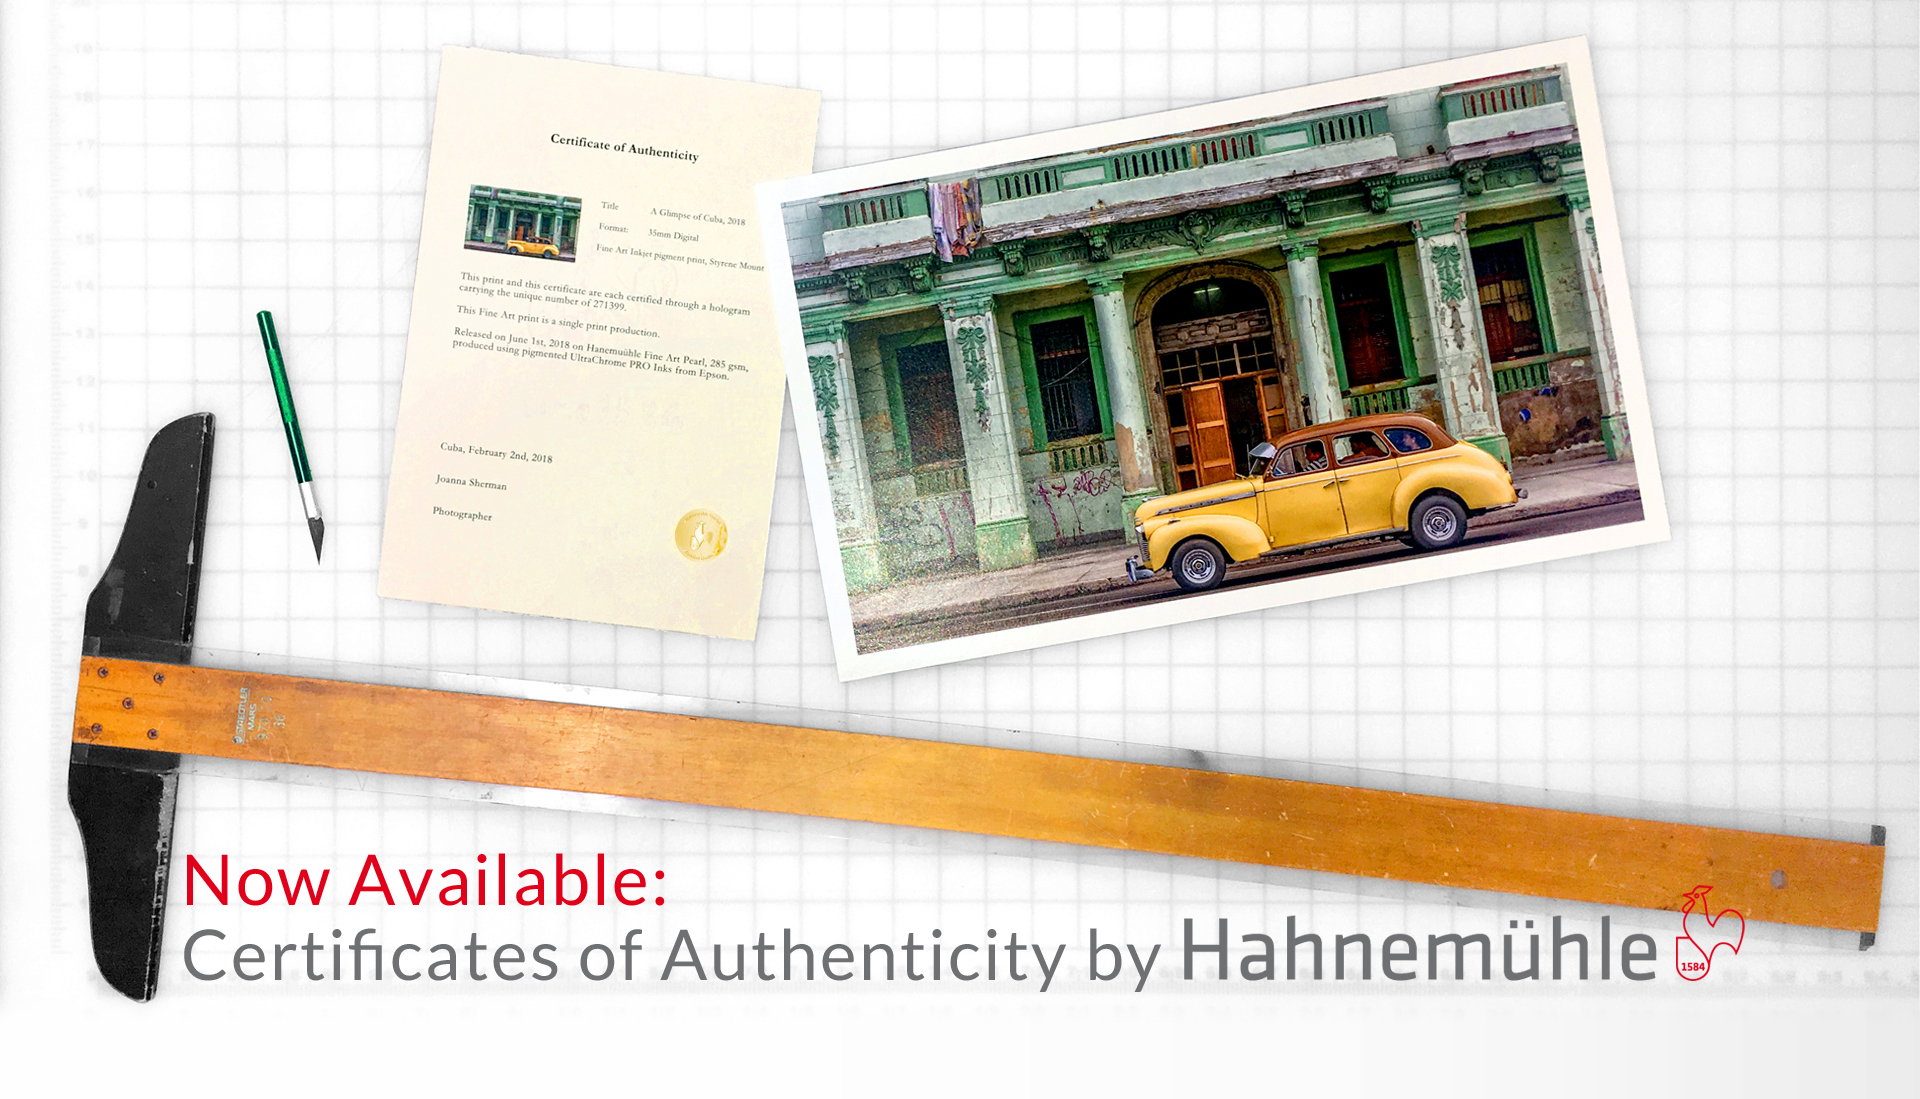 Hahnemuhle Certificate of Authenticity, Holographic Artwork Protection System